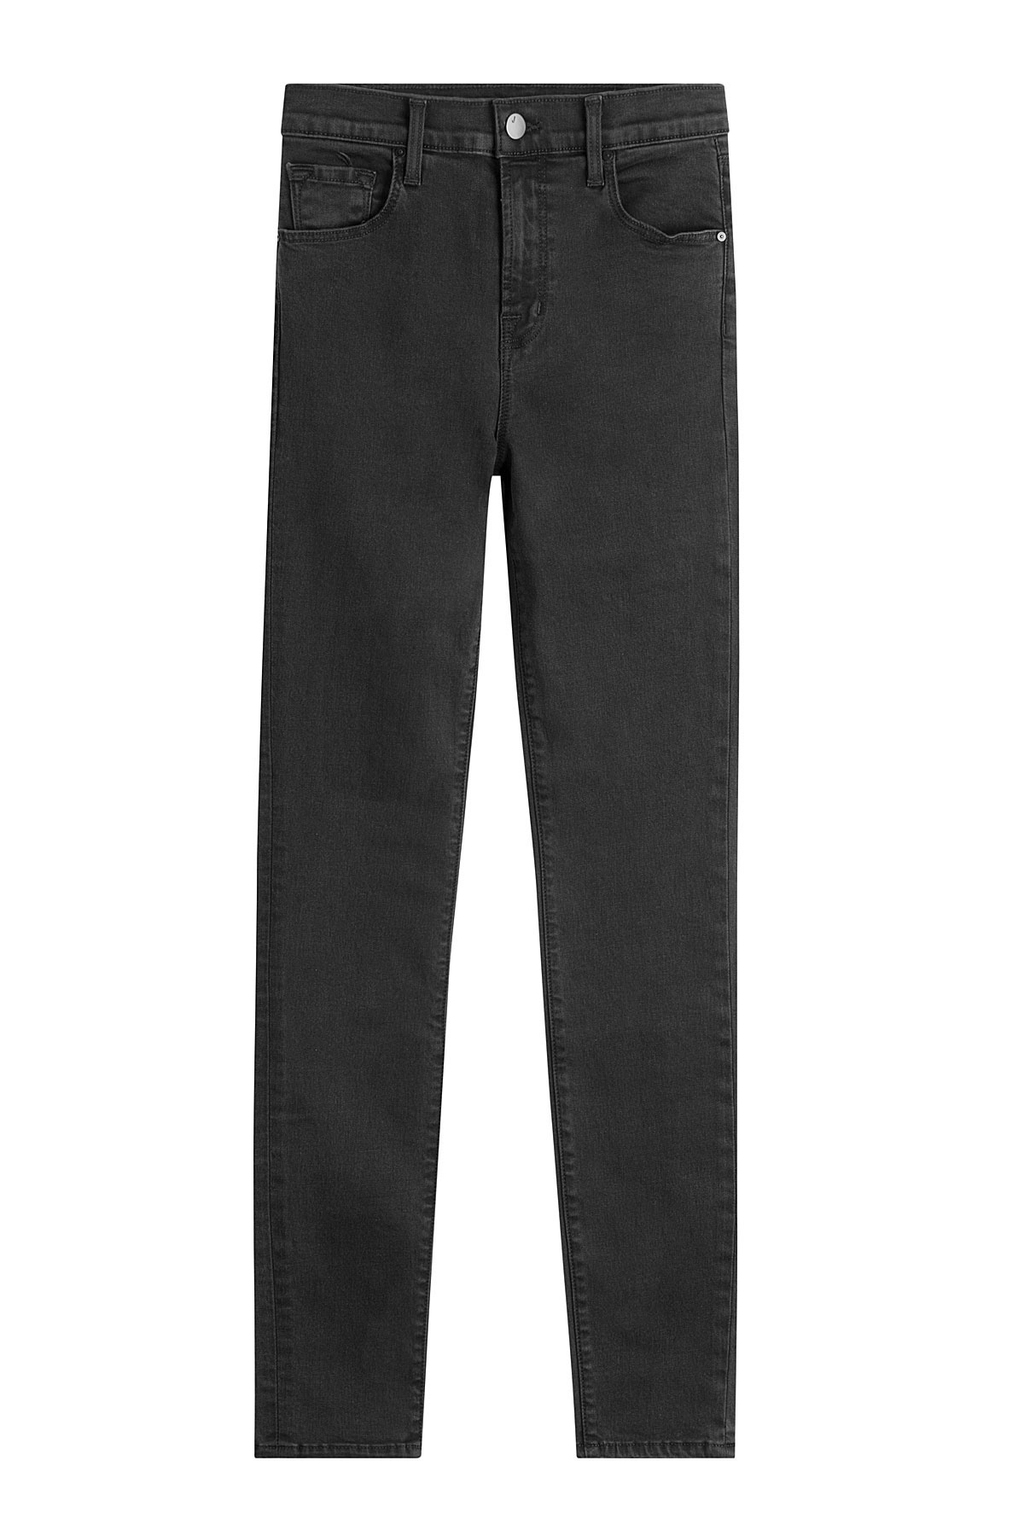 Skinny Jeans Grey - style: skinny leg; pattern: plain; pocket detail: traditional 5 pocket; waist: mid/regular rise; predominant colour: black; occasions: casual; length: ankle length; fibres: cotton - stretch; texture group: denim; pattern type: fabric; season: s/s 2016; wardrobe: basic